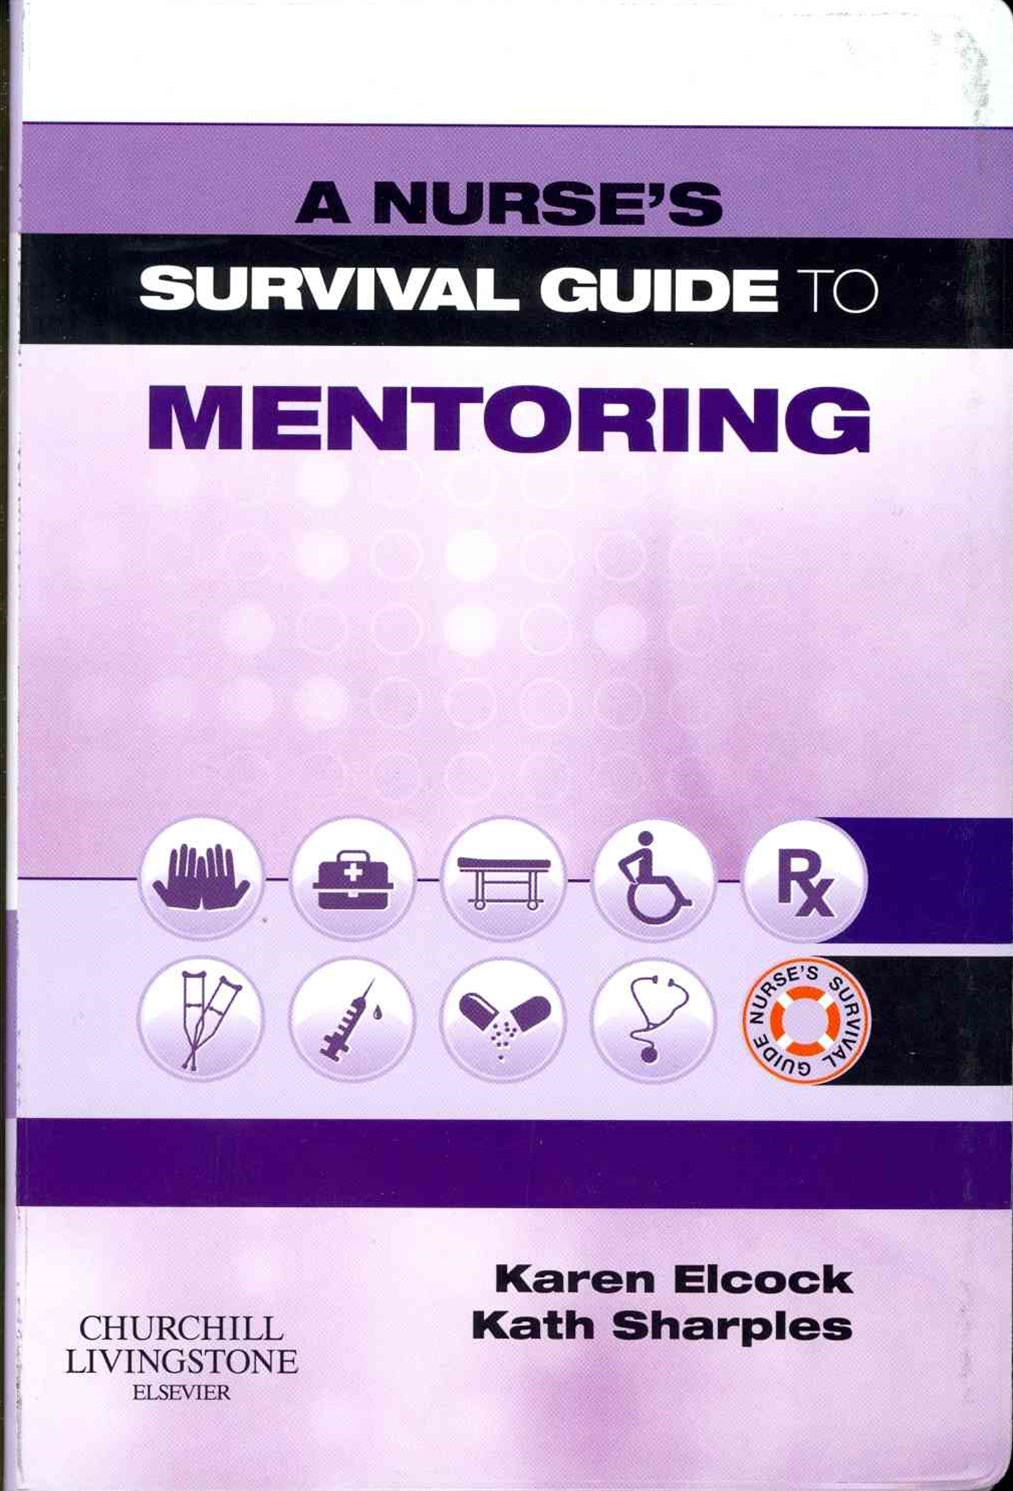 A Nurse's Survival Guide to Mentoring